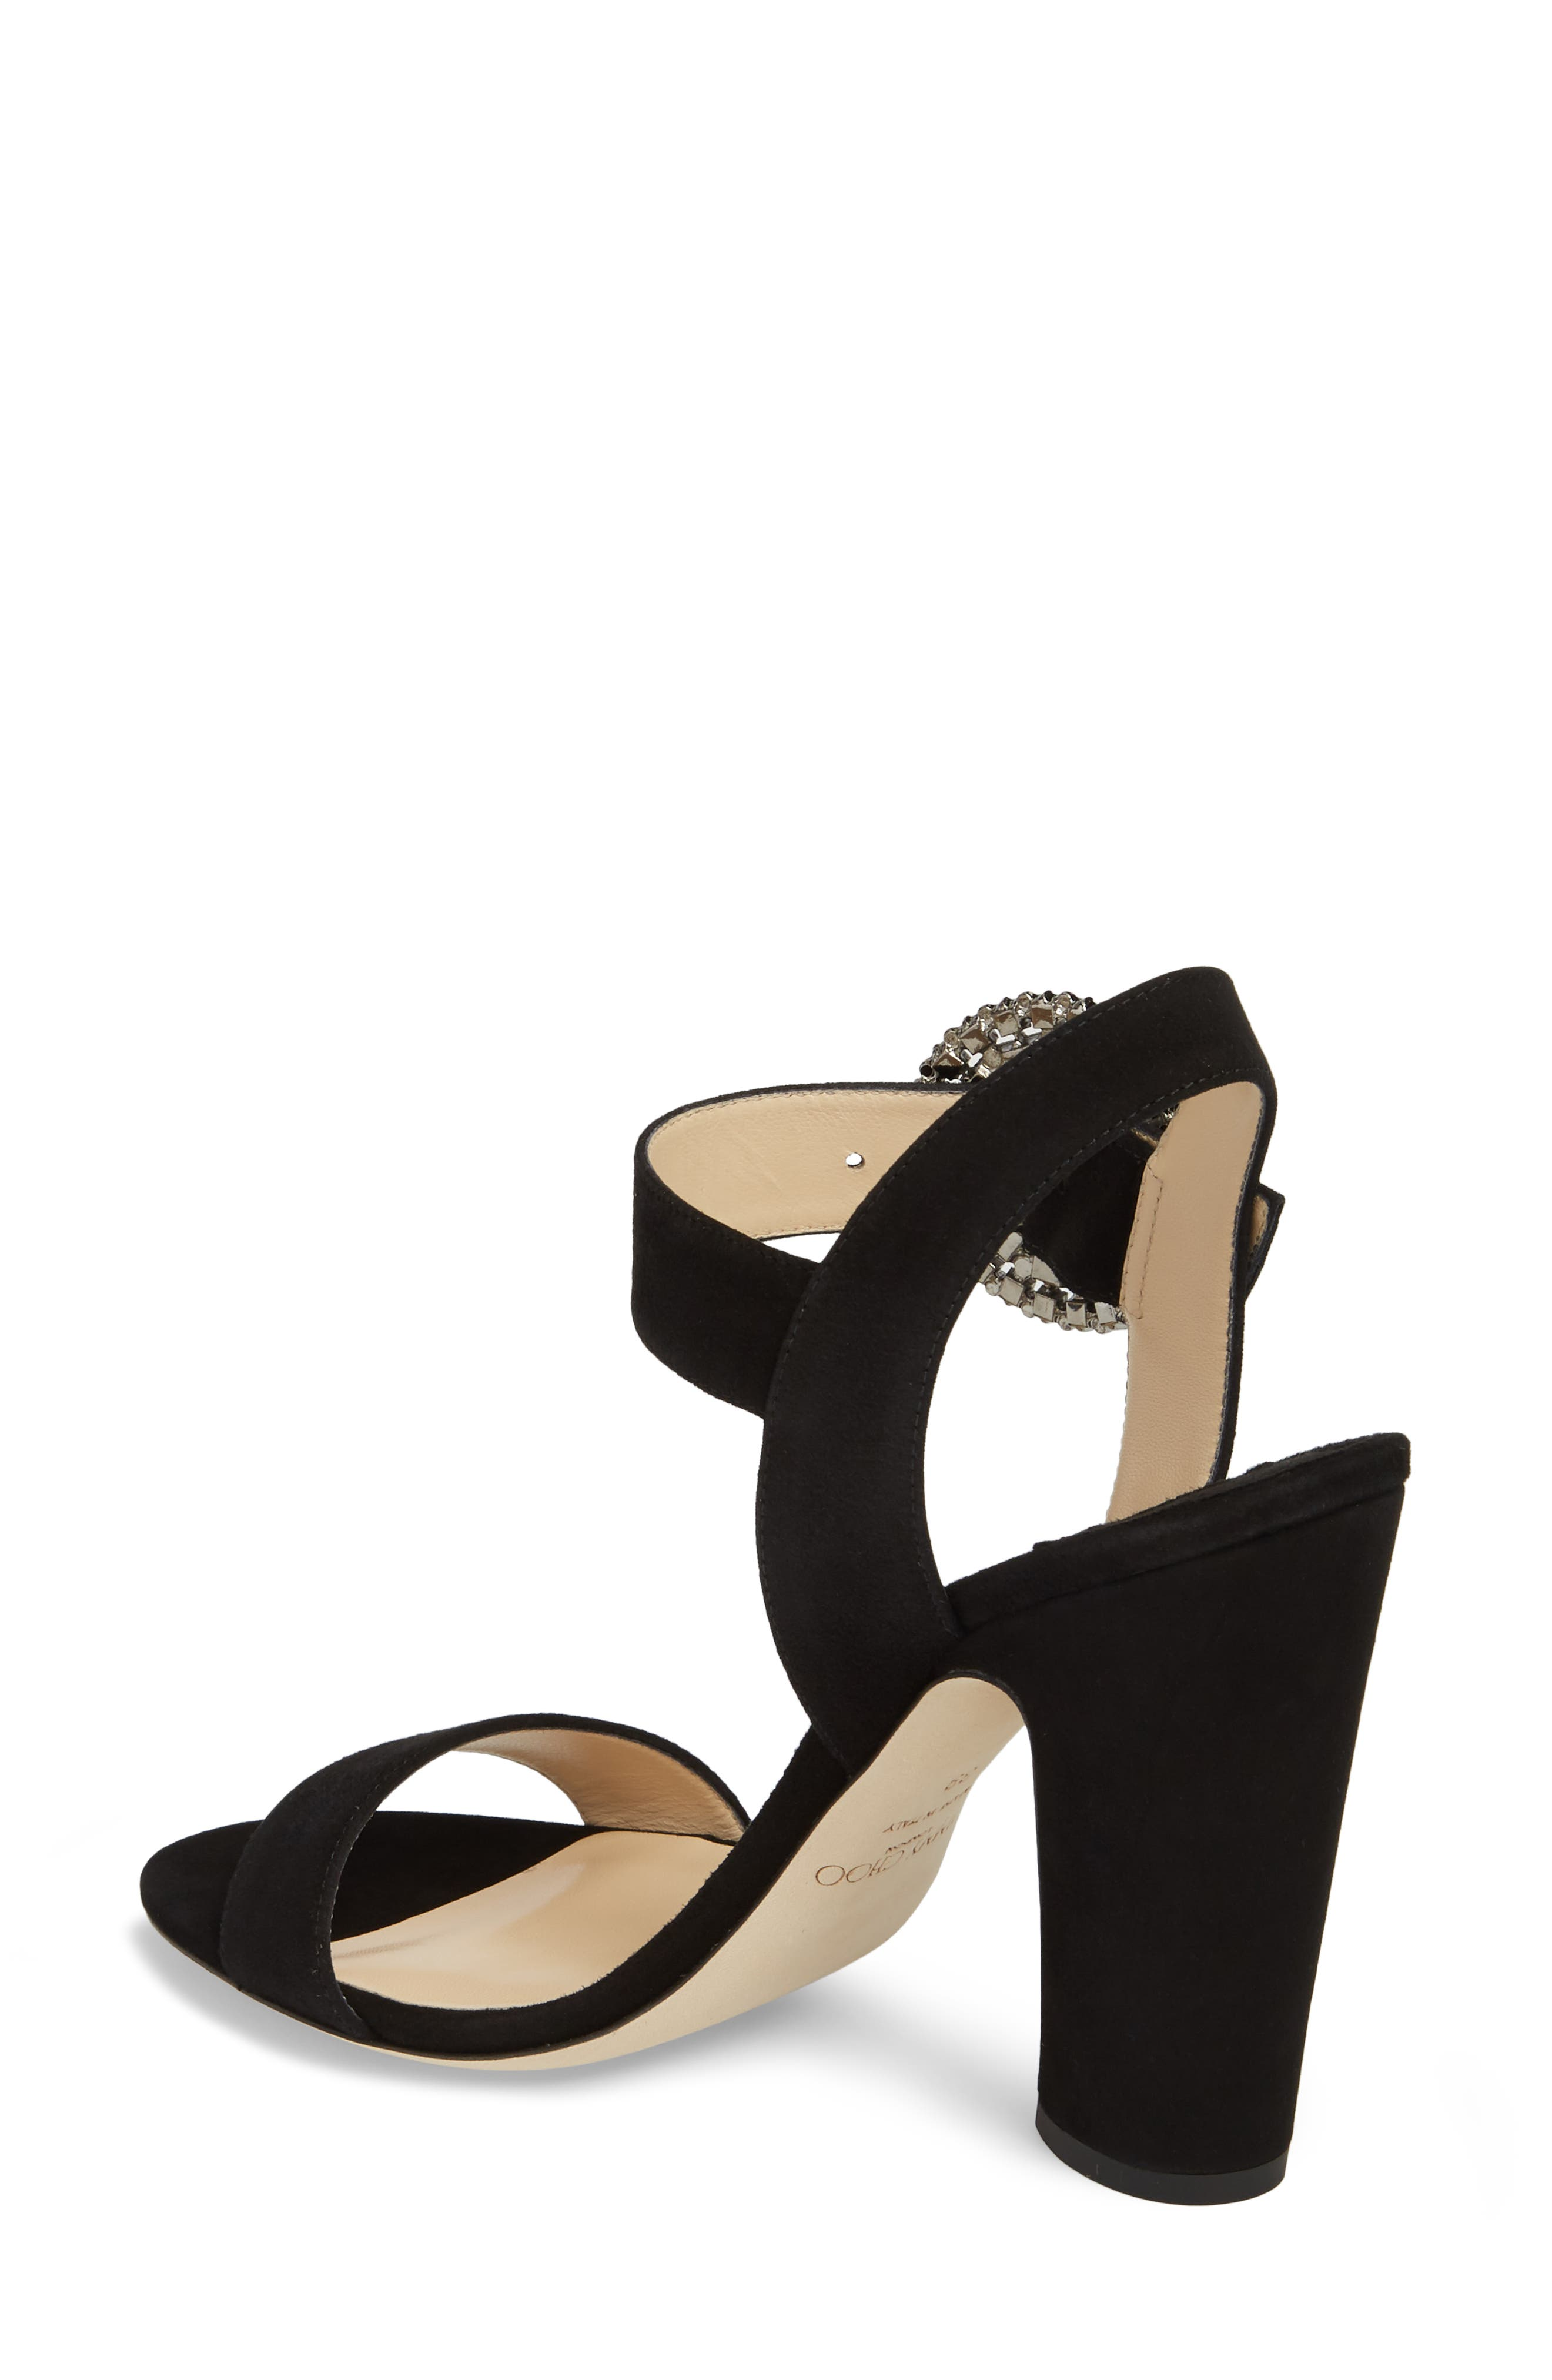 Mischa Crystal Buckle Sandal,                             Alternate thumbnail 2, color,                             Black